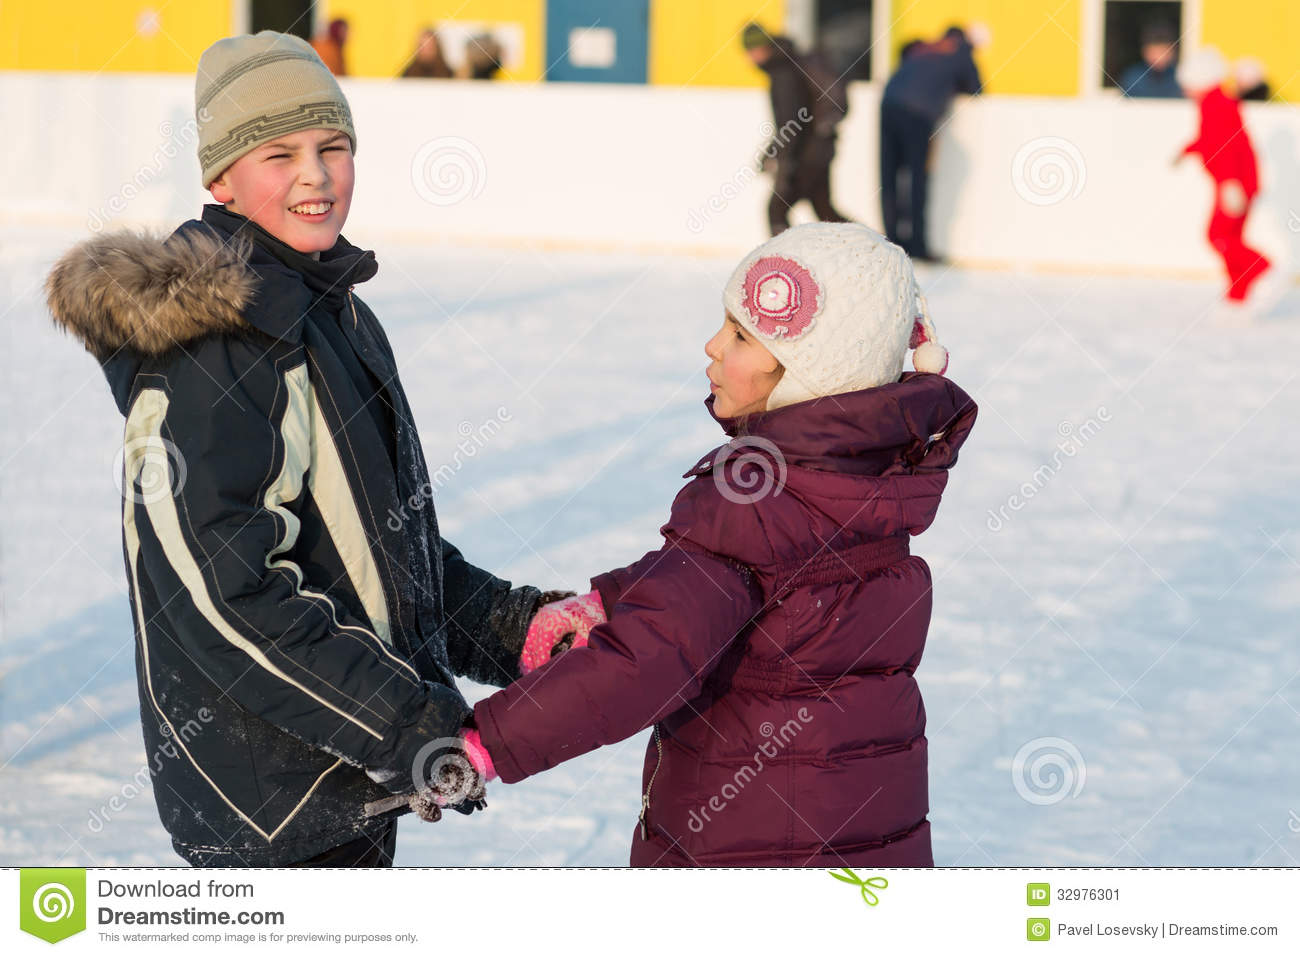 Brother and sister skating on rink hand in hand